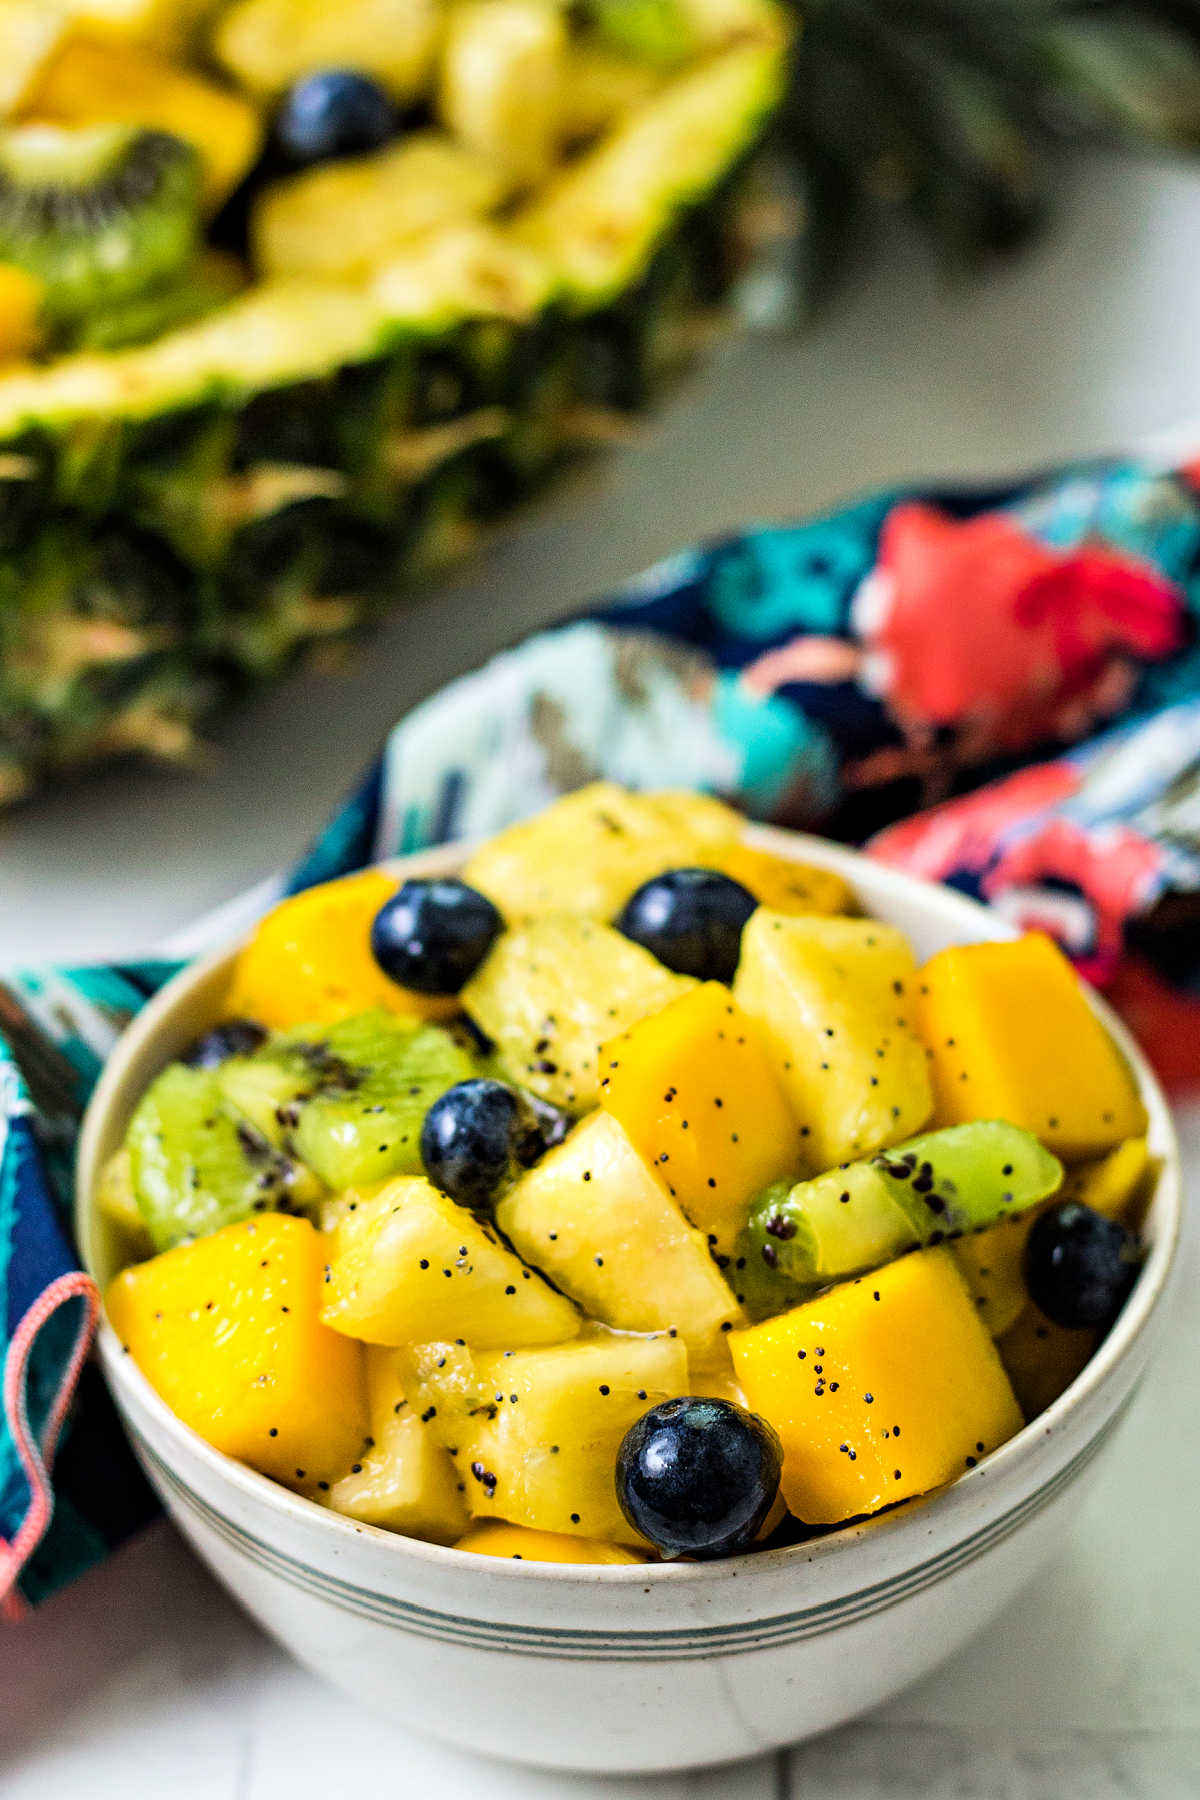 a bowl of tropical fruit salad on a table.